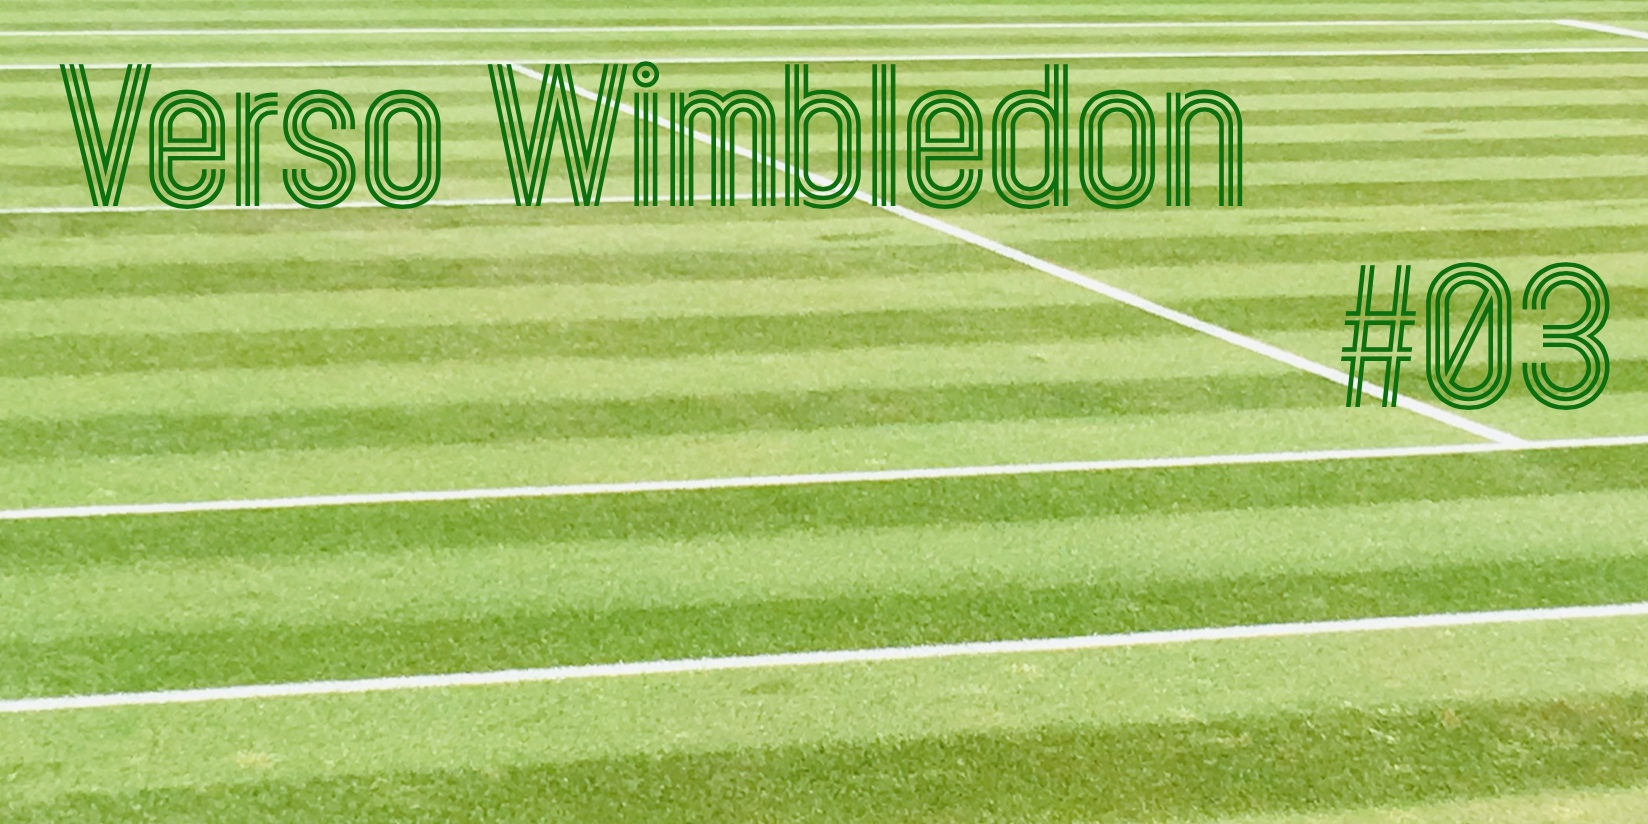 Verso Wimbledon #3 - settesei.it